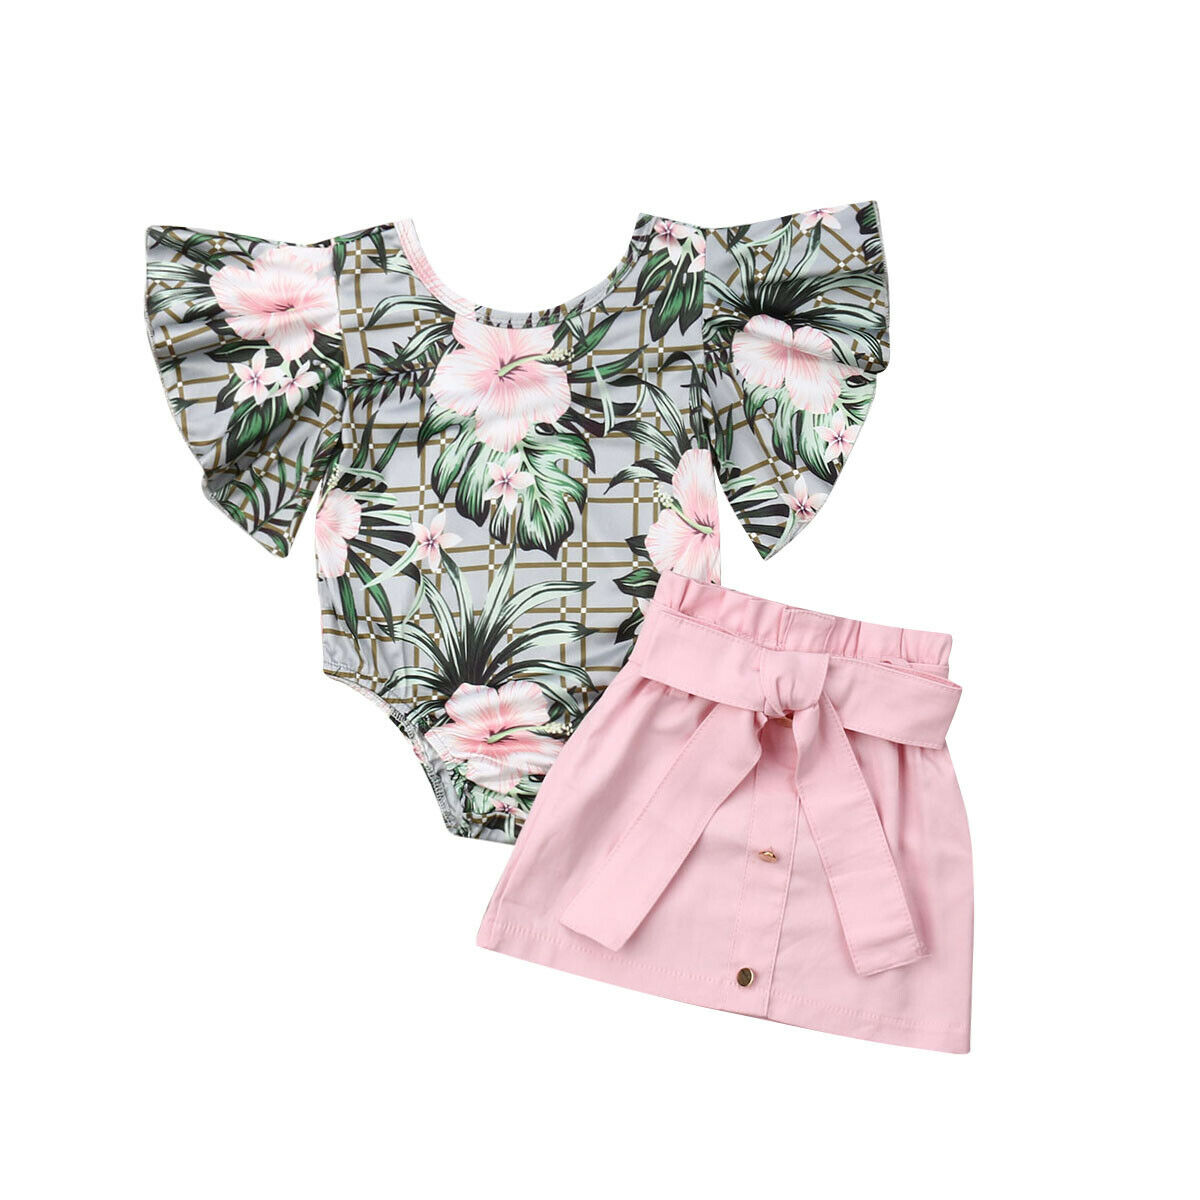 d06951de3a956 Emmababy Summer Baby Girl Clothes Ruffle Floral Girl Romper Tops+Skirt 2PCS  Set Clothes ~ Hot Deal July 2019